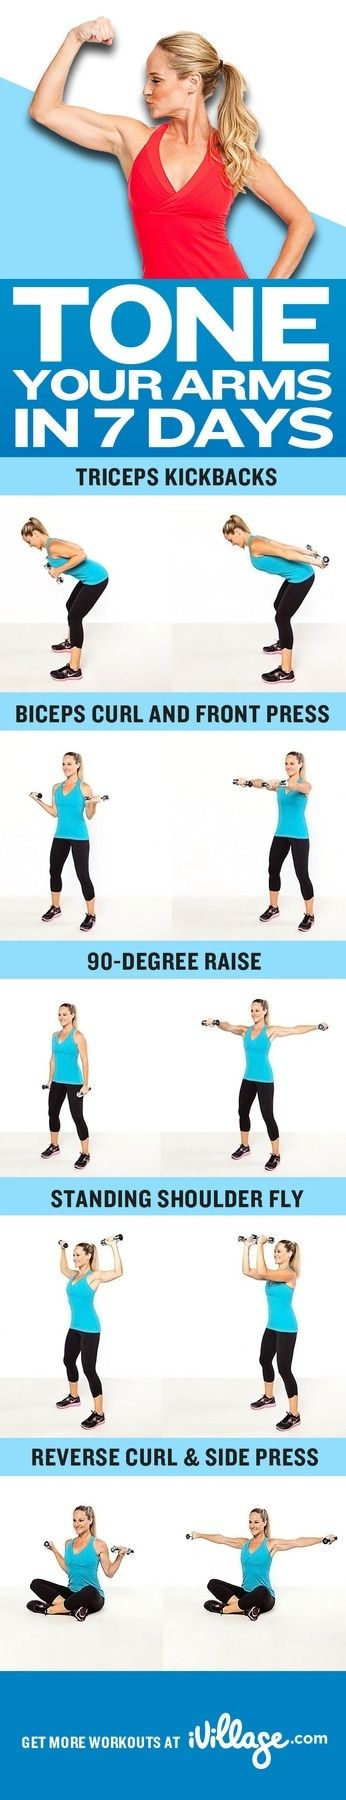 Tone your arms in 7 days with these easy workouts.